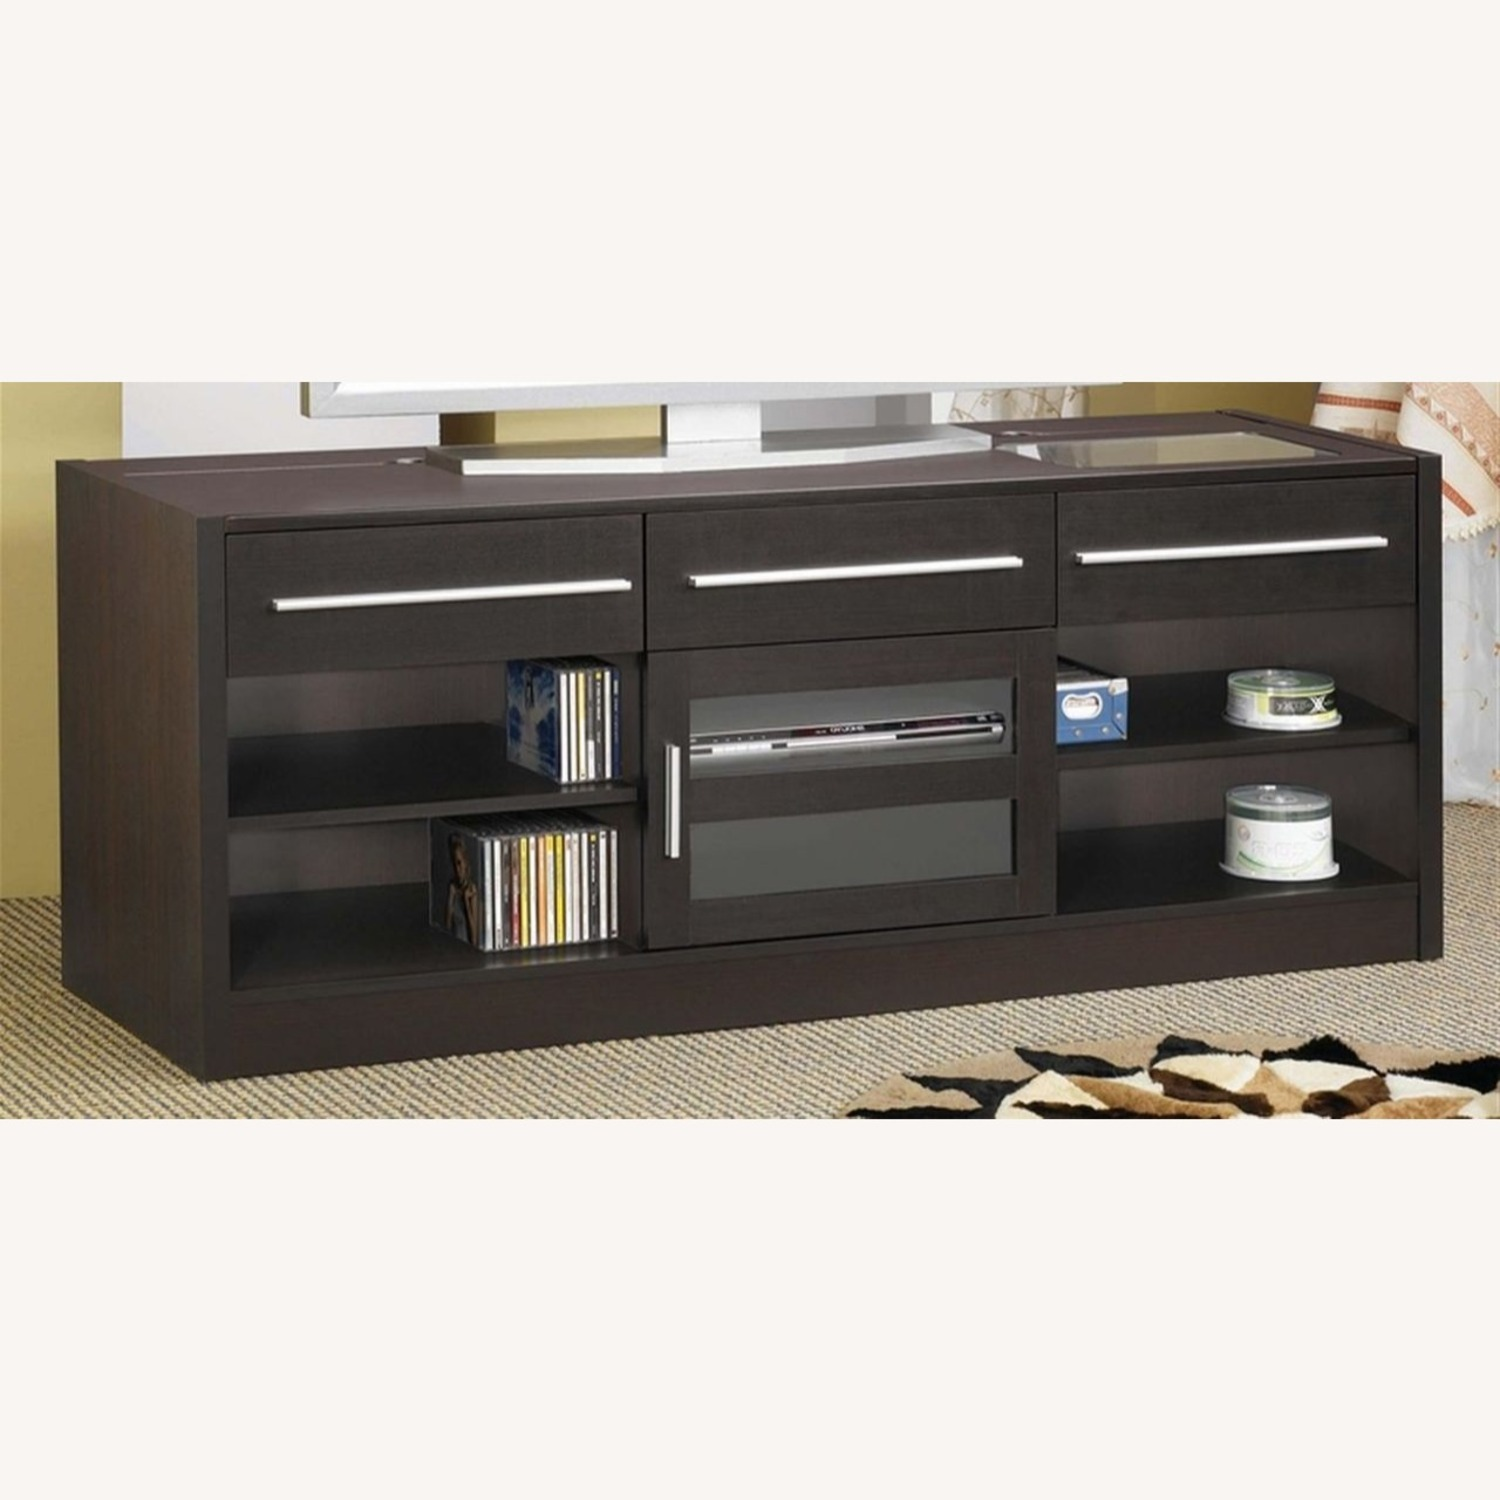 60-Inch Connect-It TV Console In Cappuccino Finish - image-1